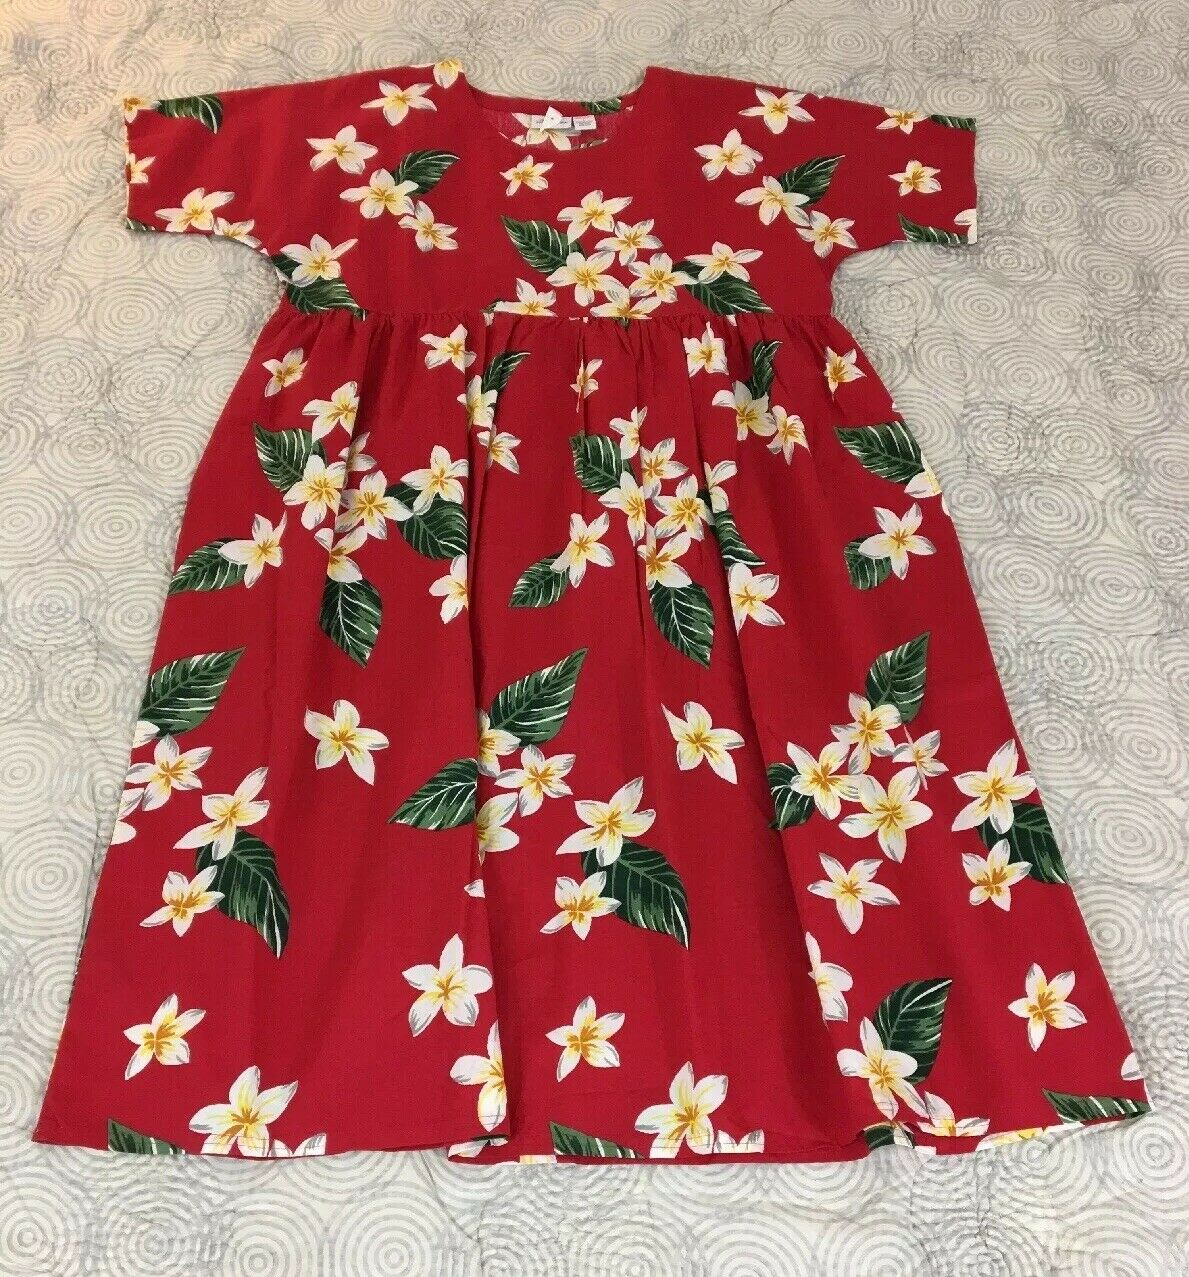 Vermont Country Store rot Floral India Print Vintage Style Cotton Dress Sz L NEW